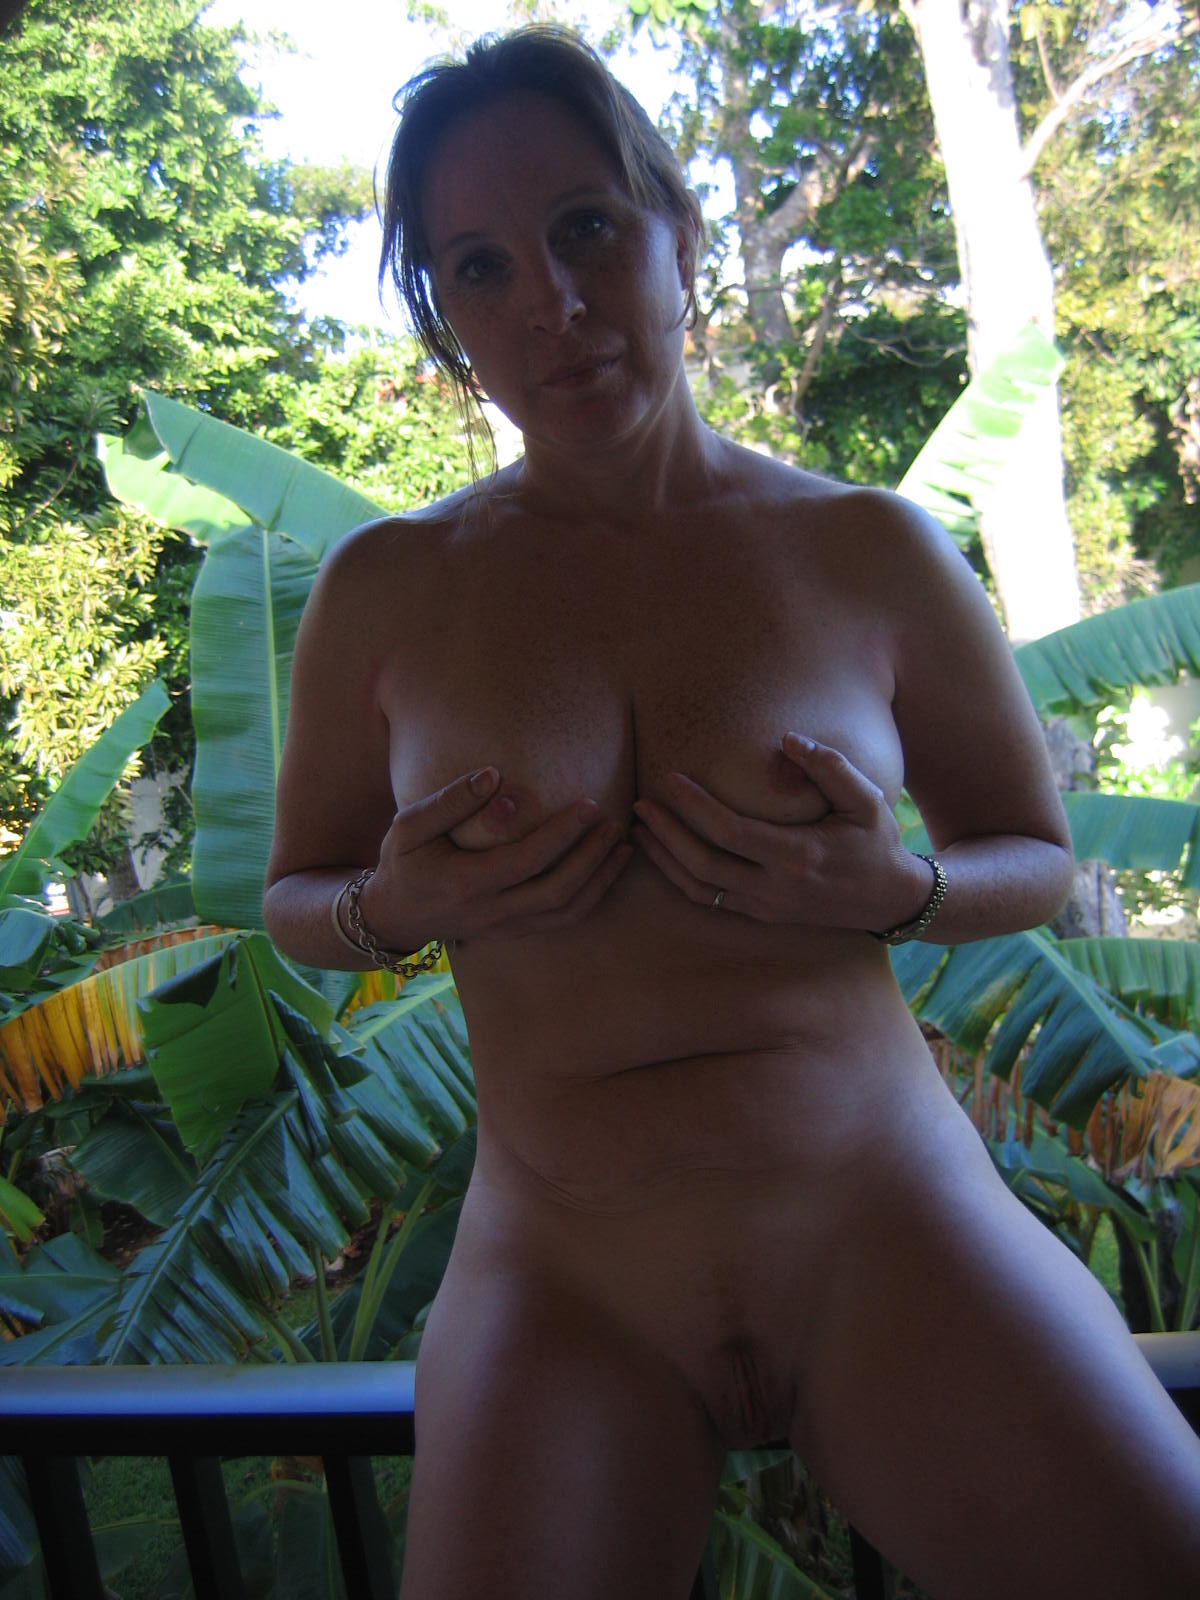 Can suggest My topless mom hope